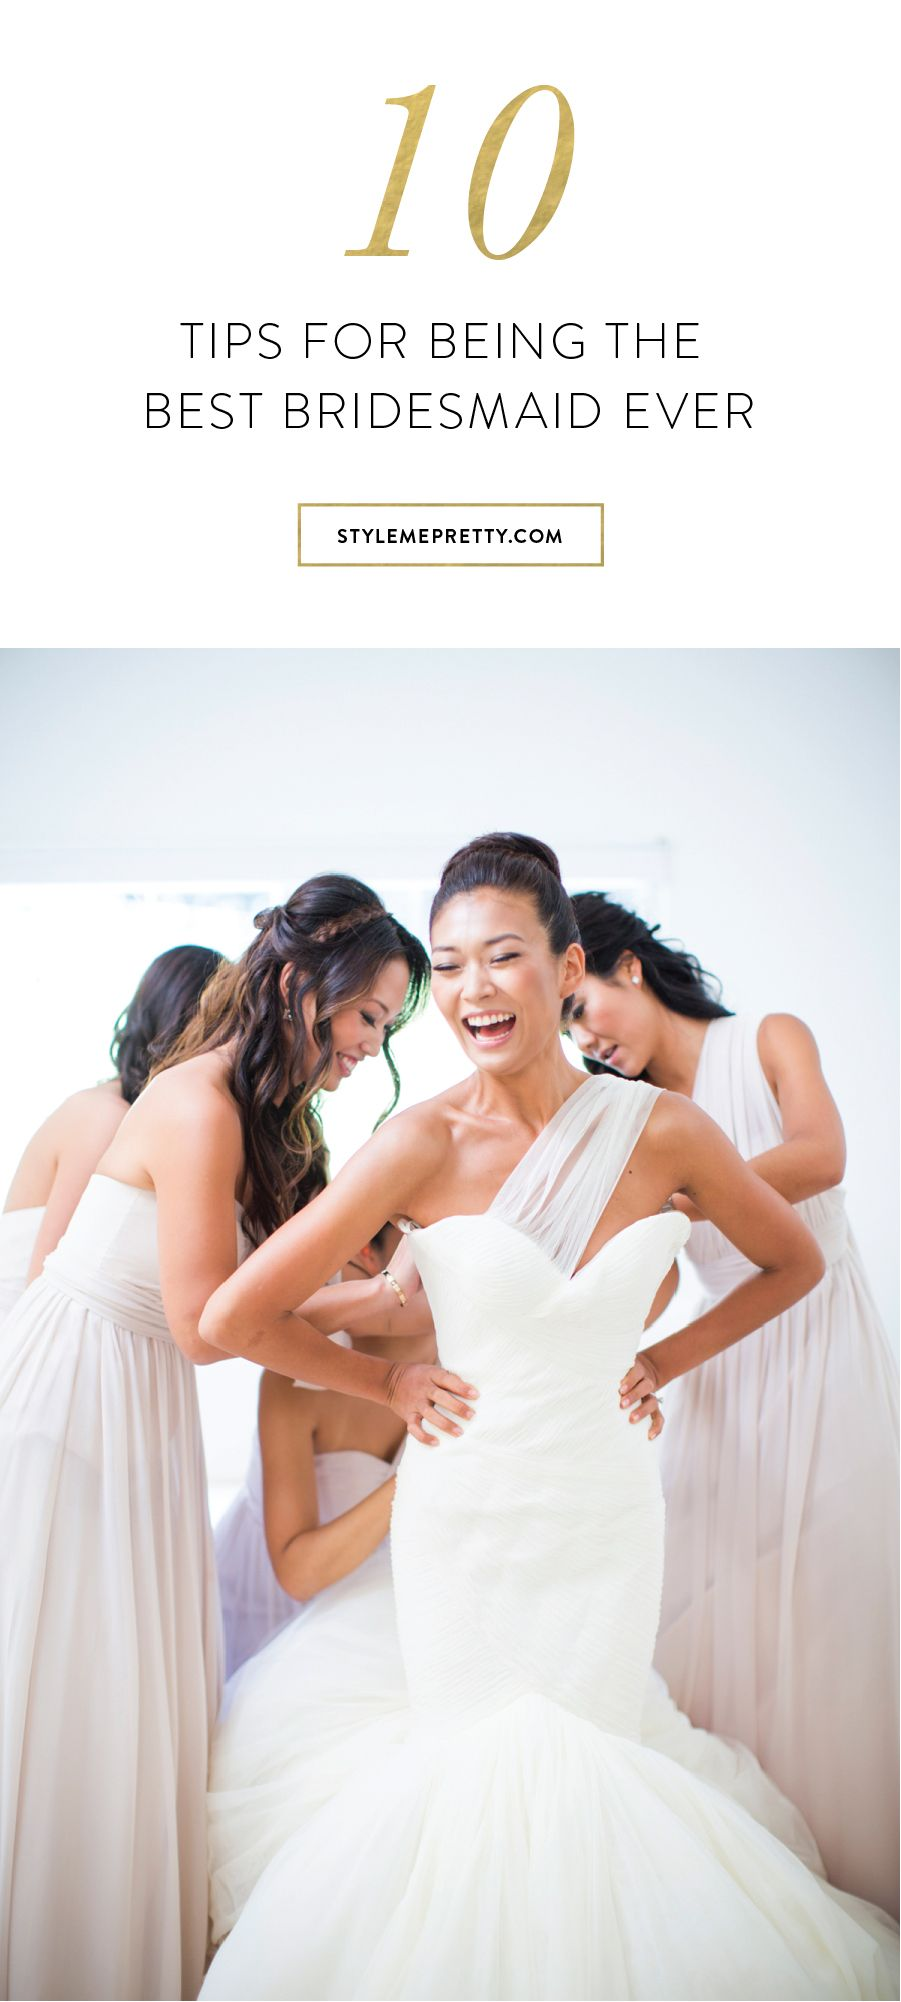 10 tips for being the perfect bridesmaid wedding wedding bells how to be the best bridesmaid ever weddingtips via stylemepretty ombrellifo Gallery